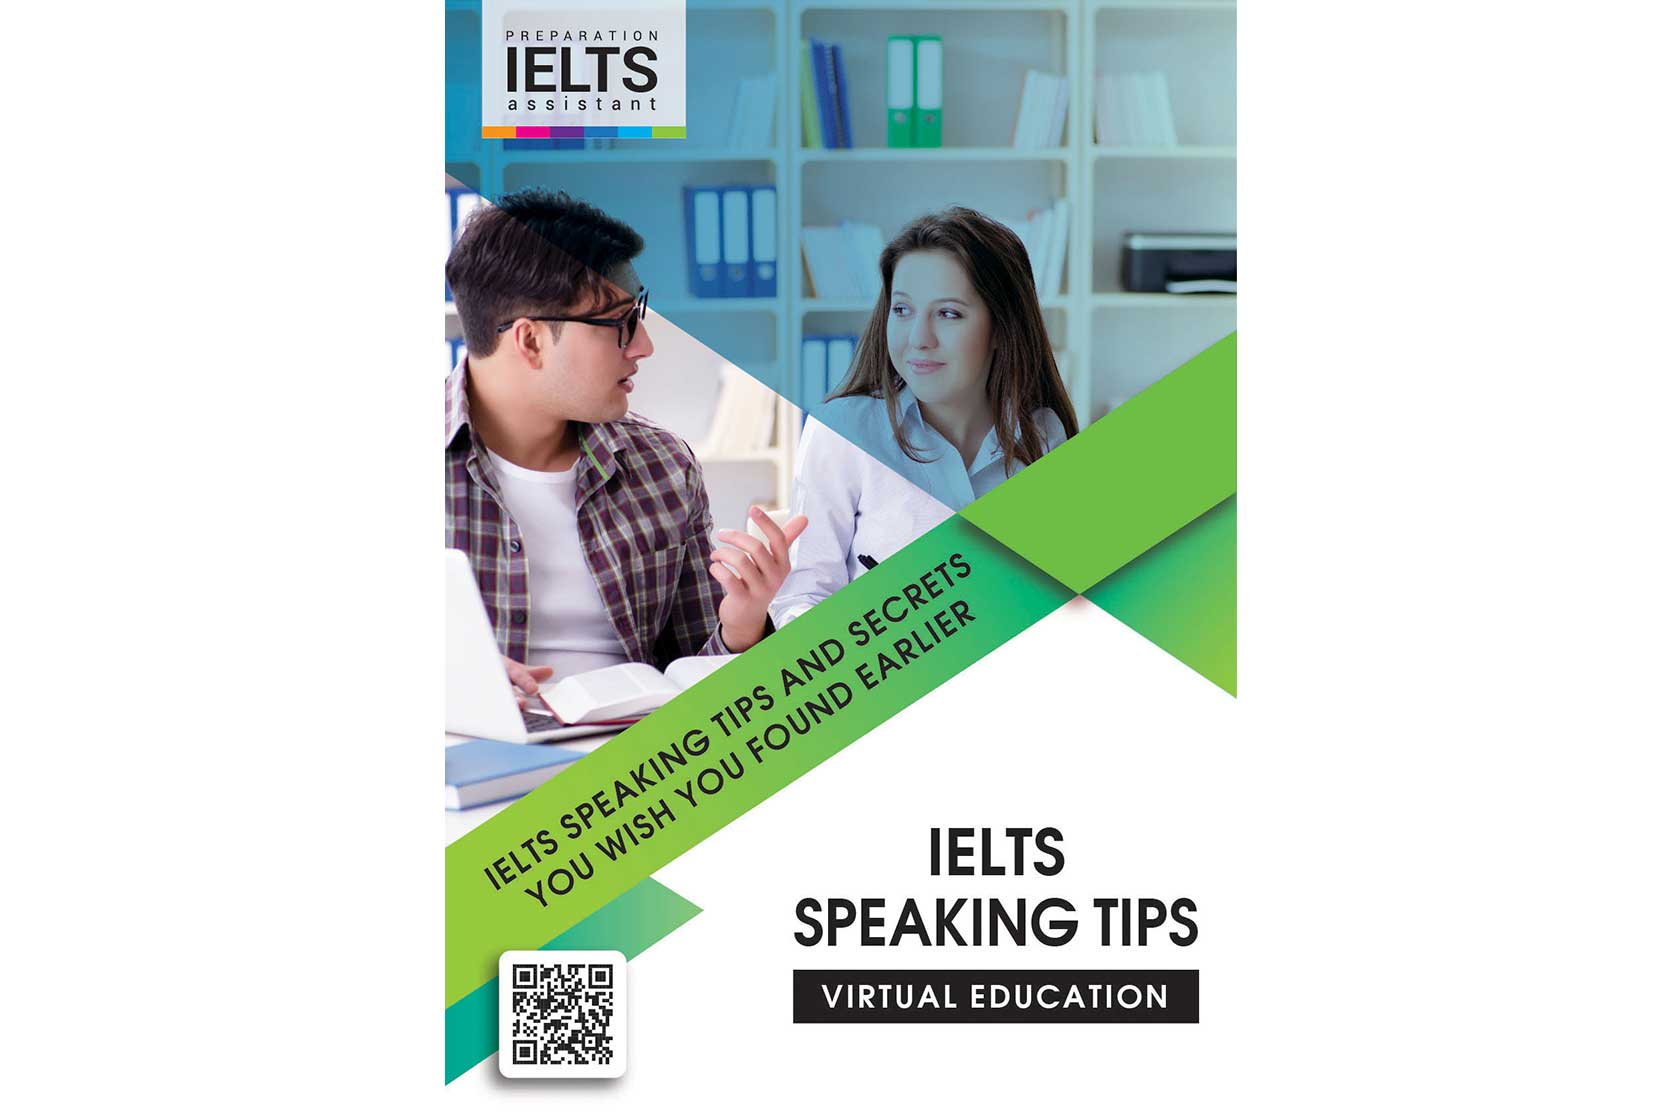 IELTS Preparation Assistant